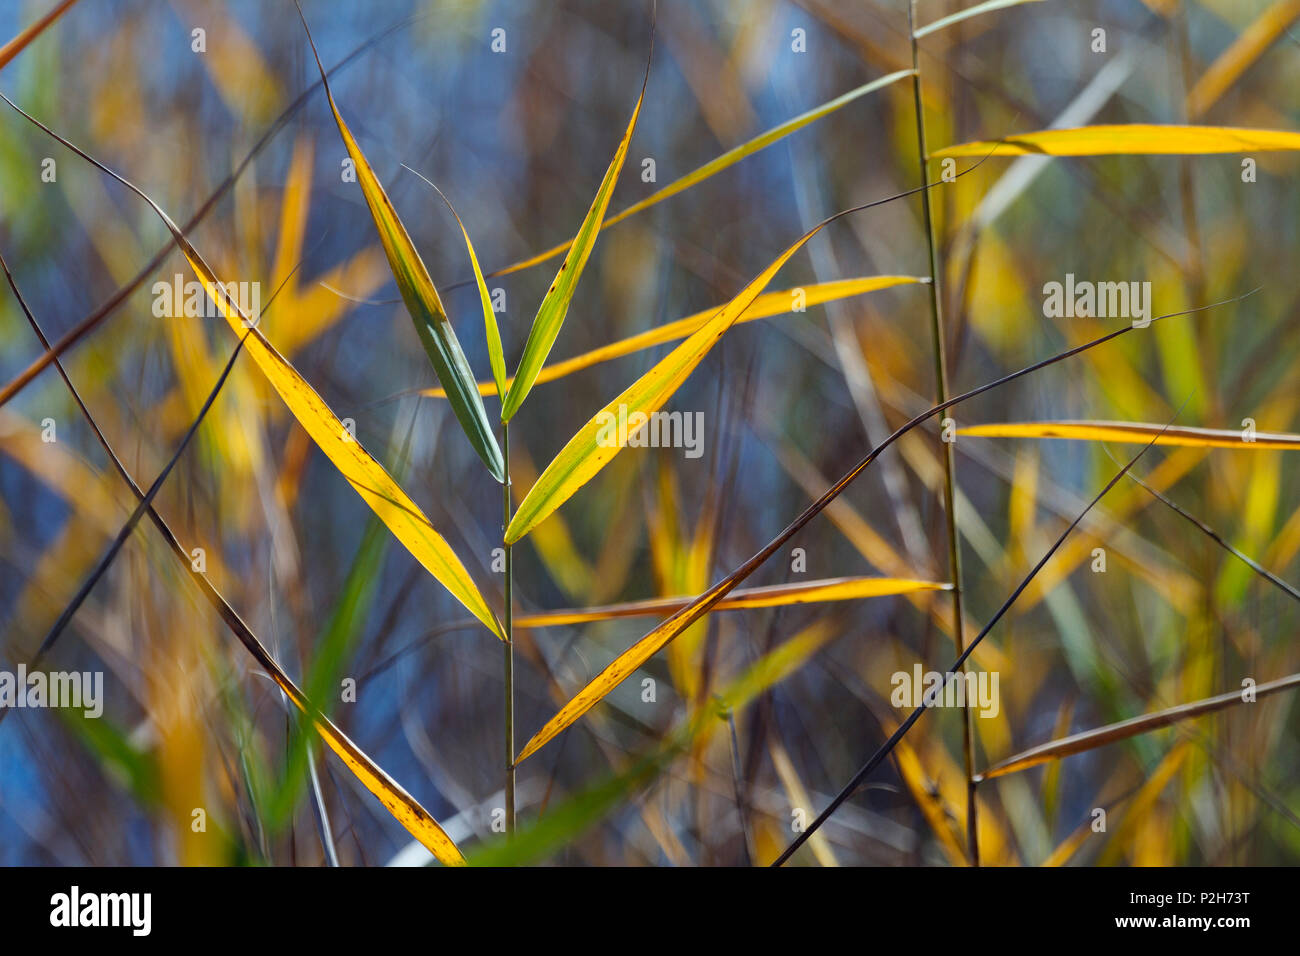 reed in autumn, Phragmites australis, Upper Bavaria Germany - Stock Image